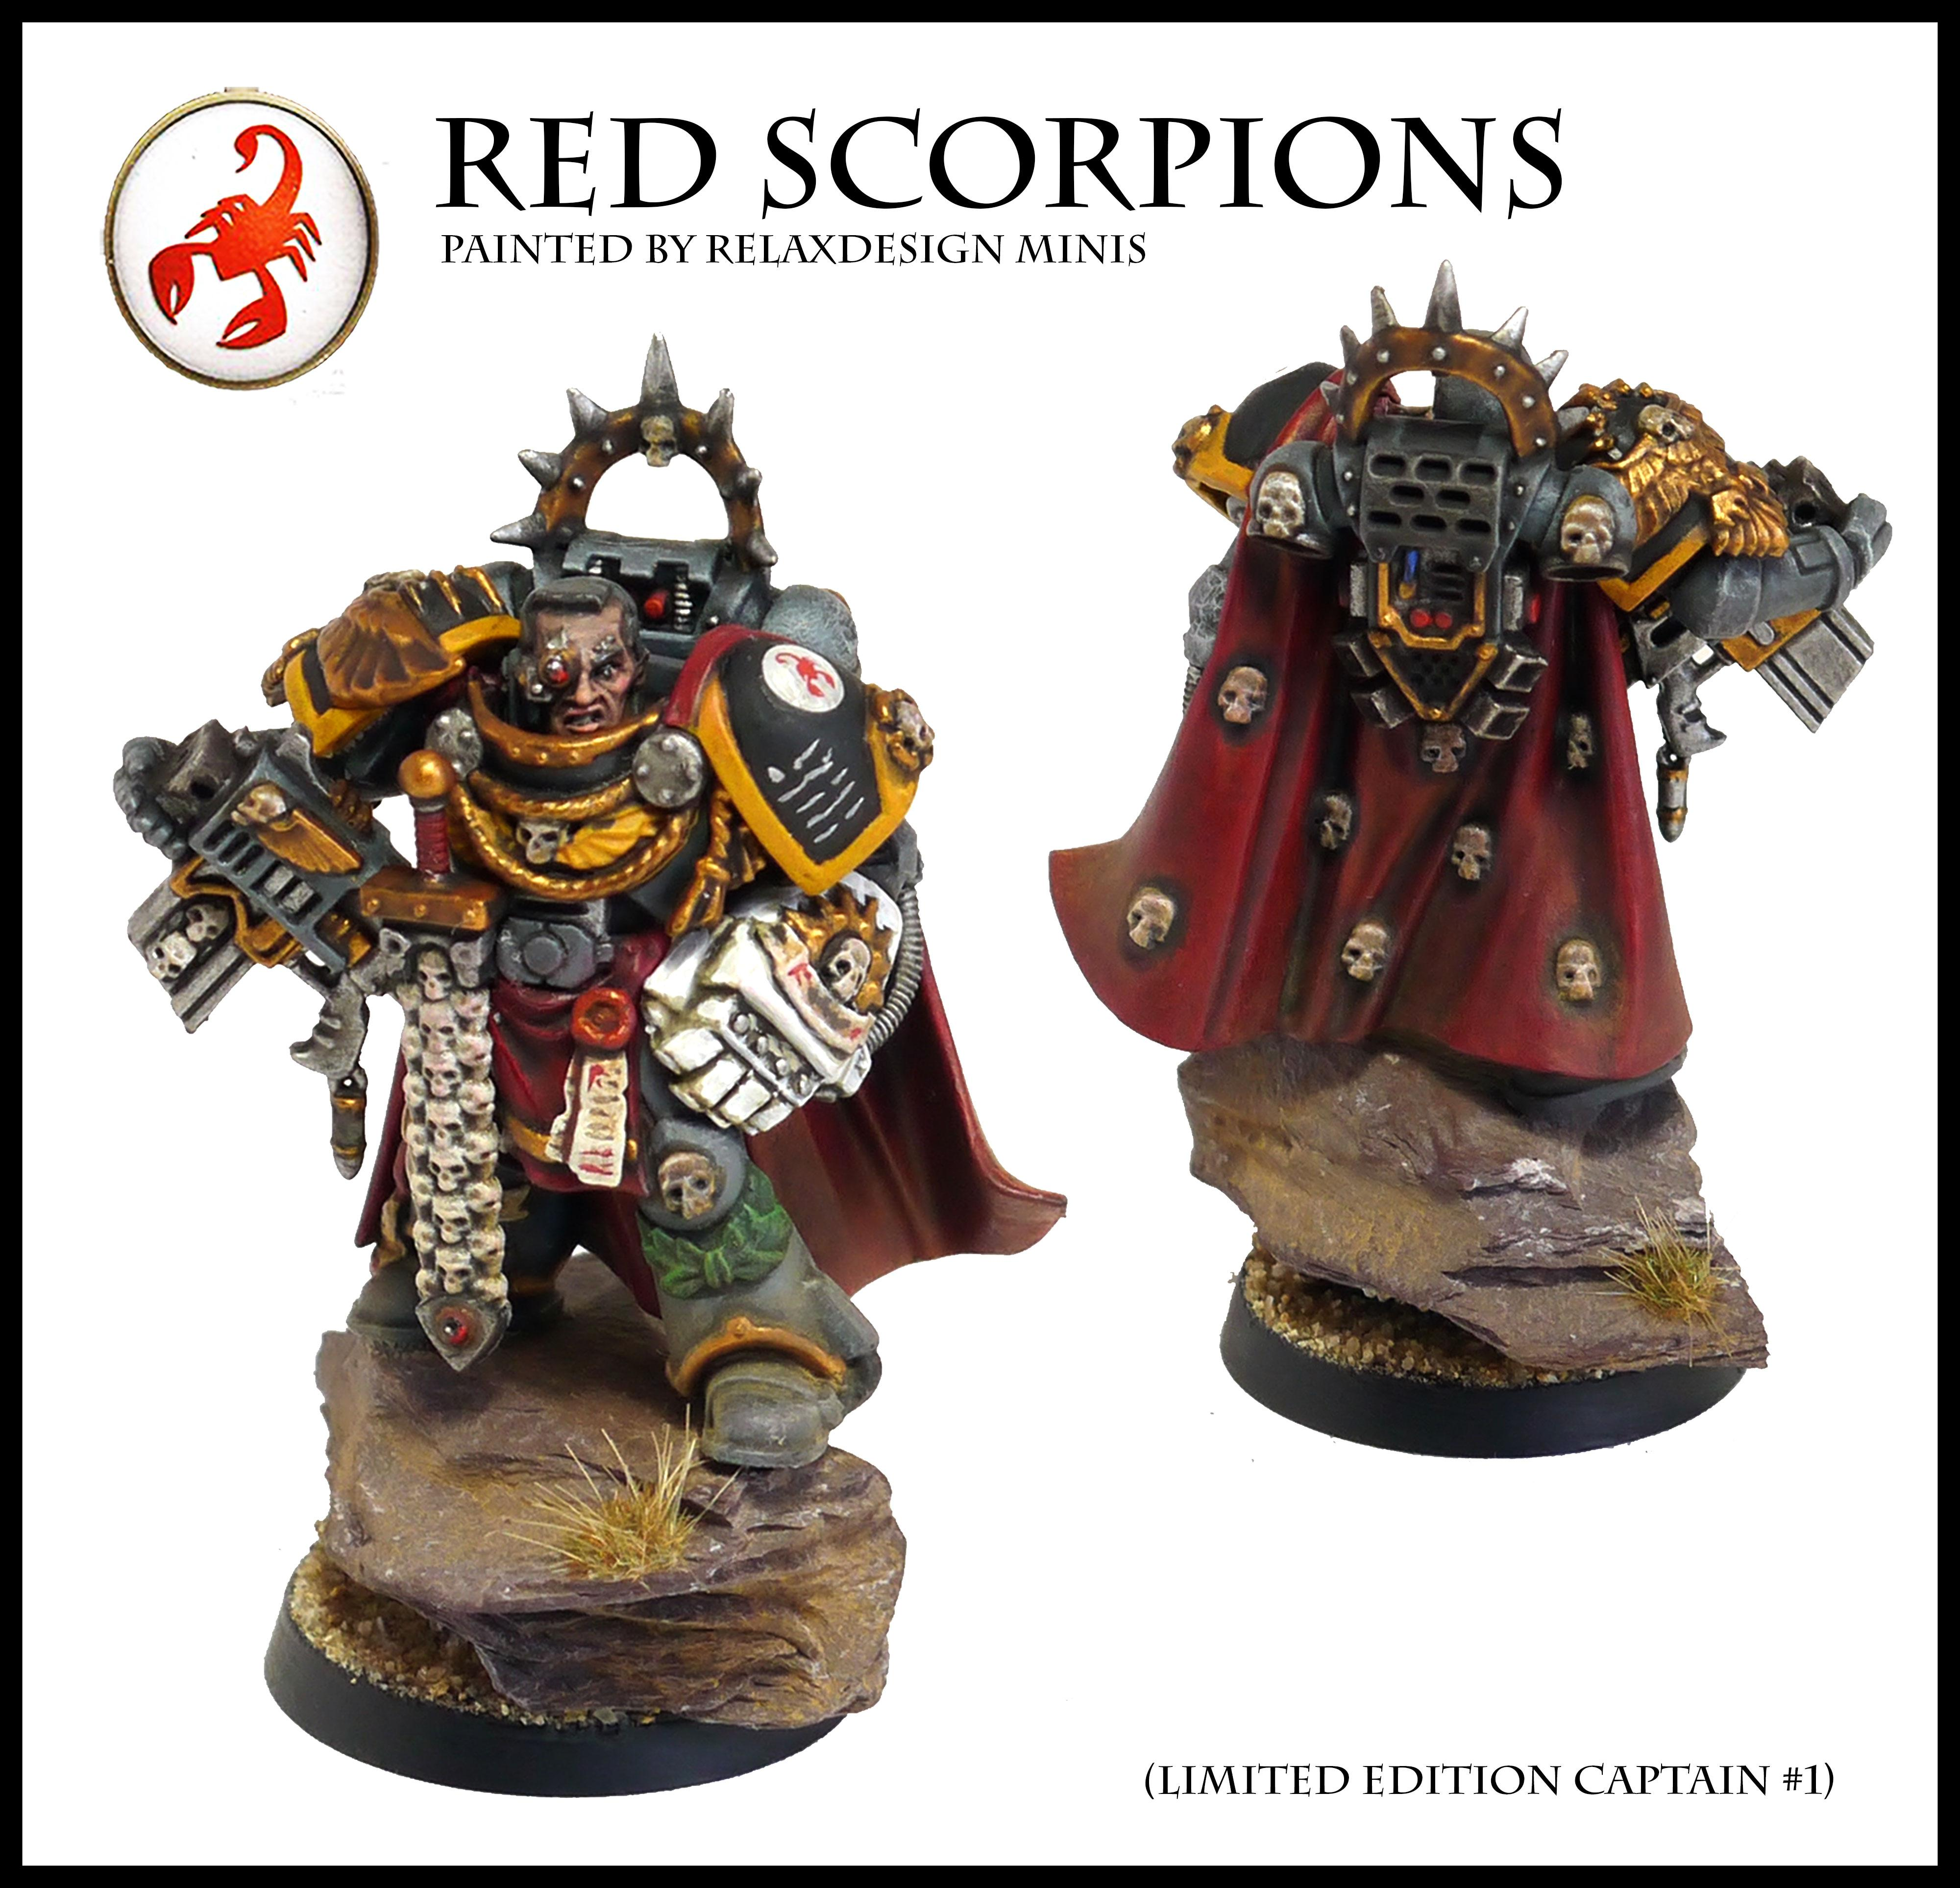 #1, Captain, Commander, Forge World, Games Workshop, Limited Edition, Red Scorpions, Space Marines, Warhammer 40,000, Warhammer Fantasy